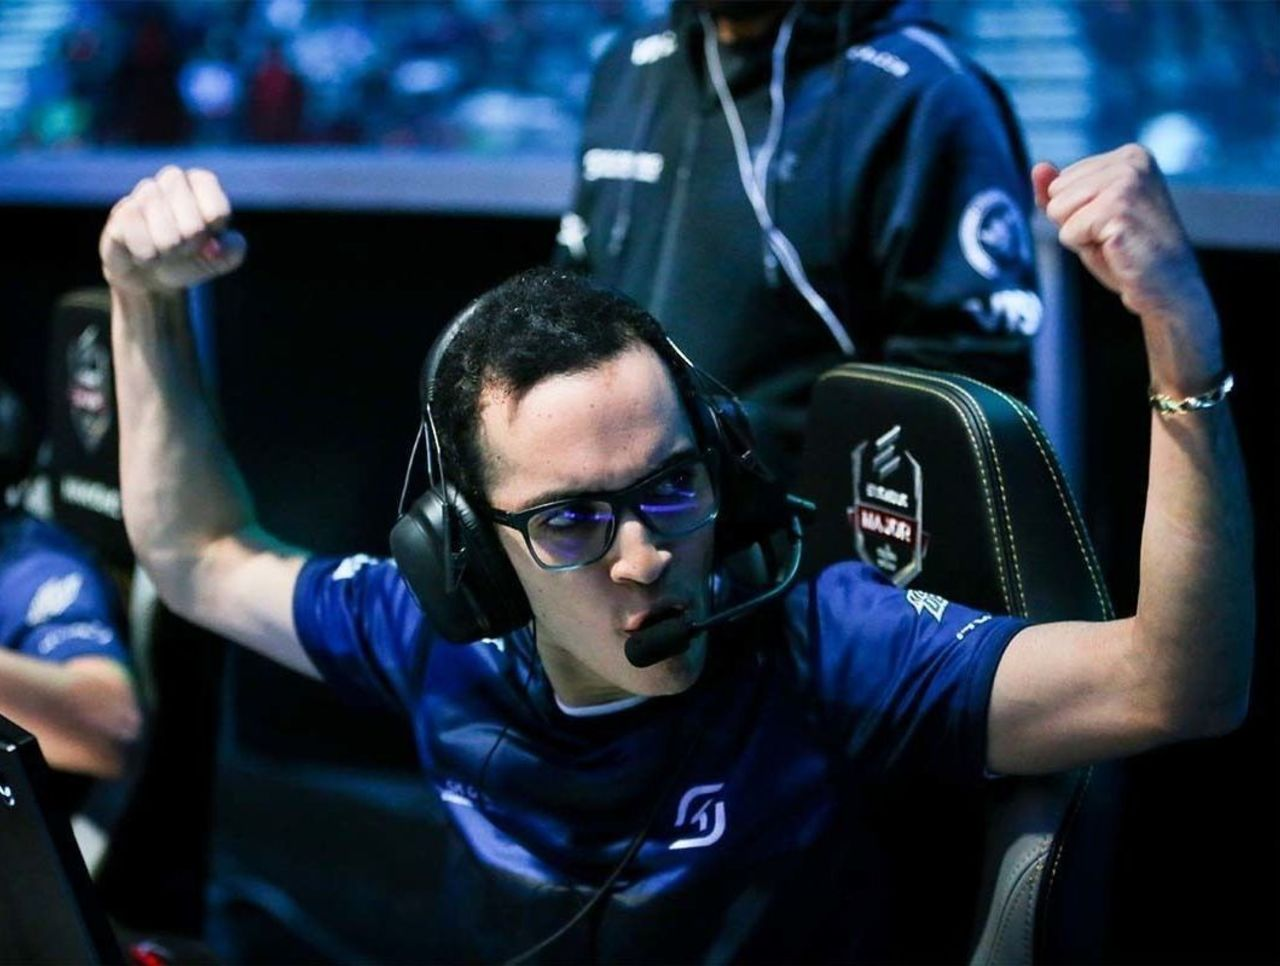 theScore esports Daily (Dec. 21): Liquid and MIBR exchange TACO and zews for Stewie2K, ByuN announces start of military service and OWL announces suspensions, fines for several players